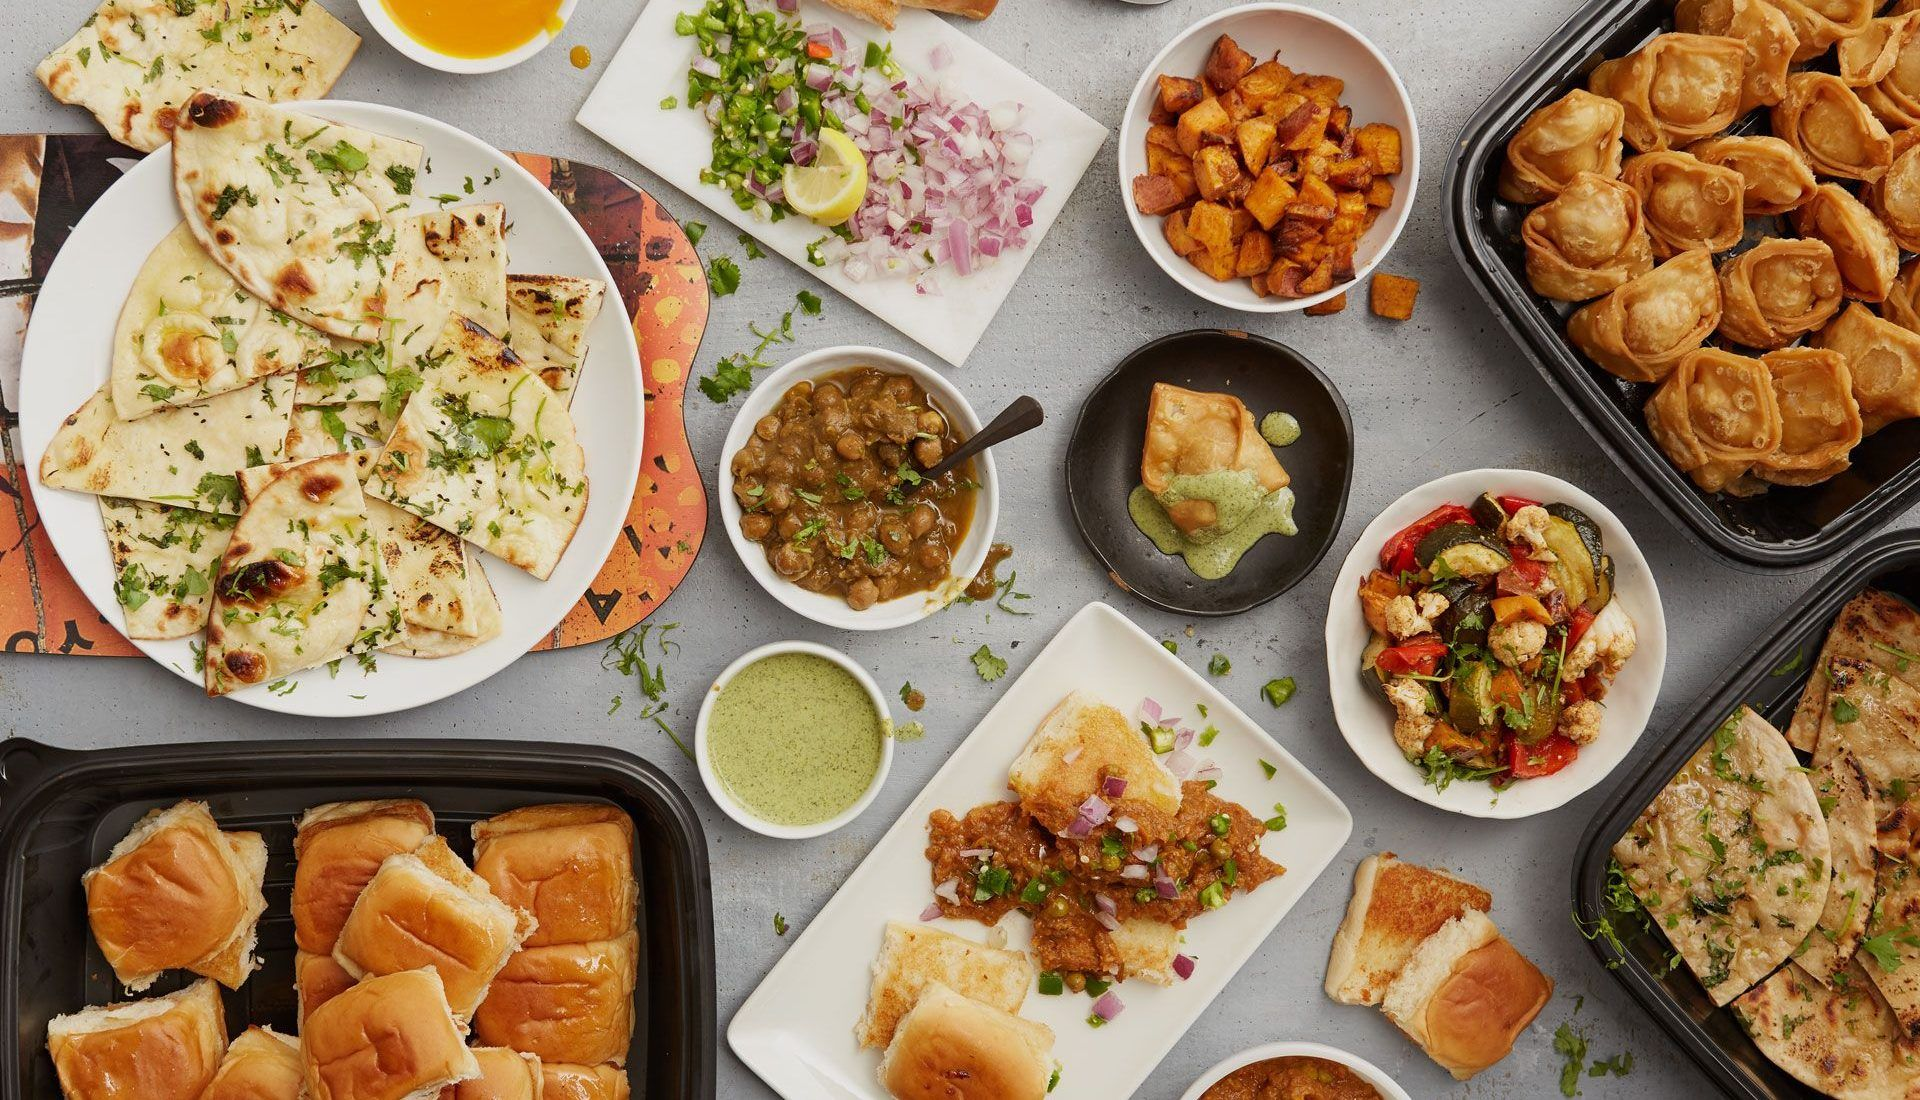 catering appetizers including naan, wheat naan, pav bhaji, samosas and chickpea masala